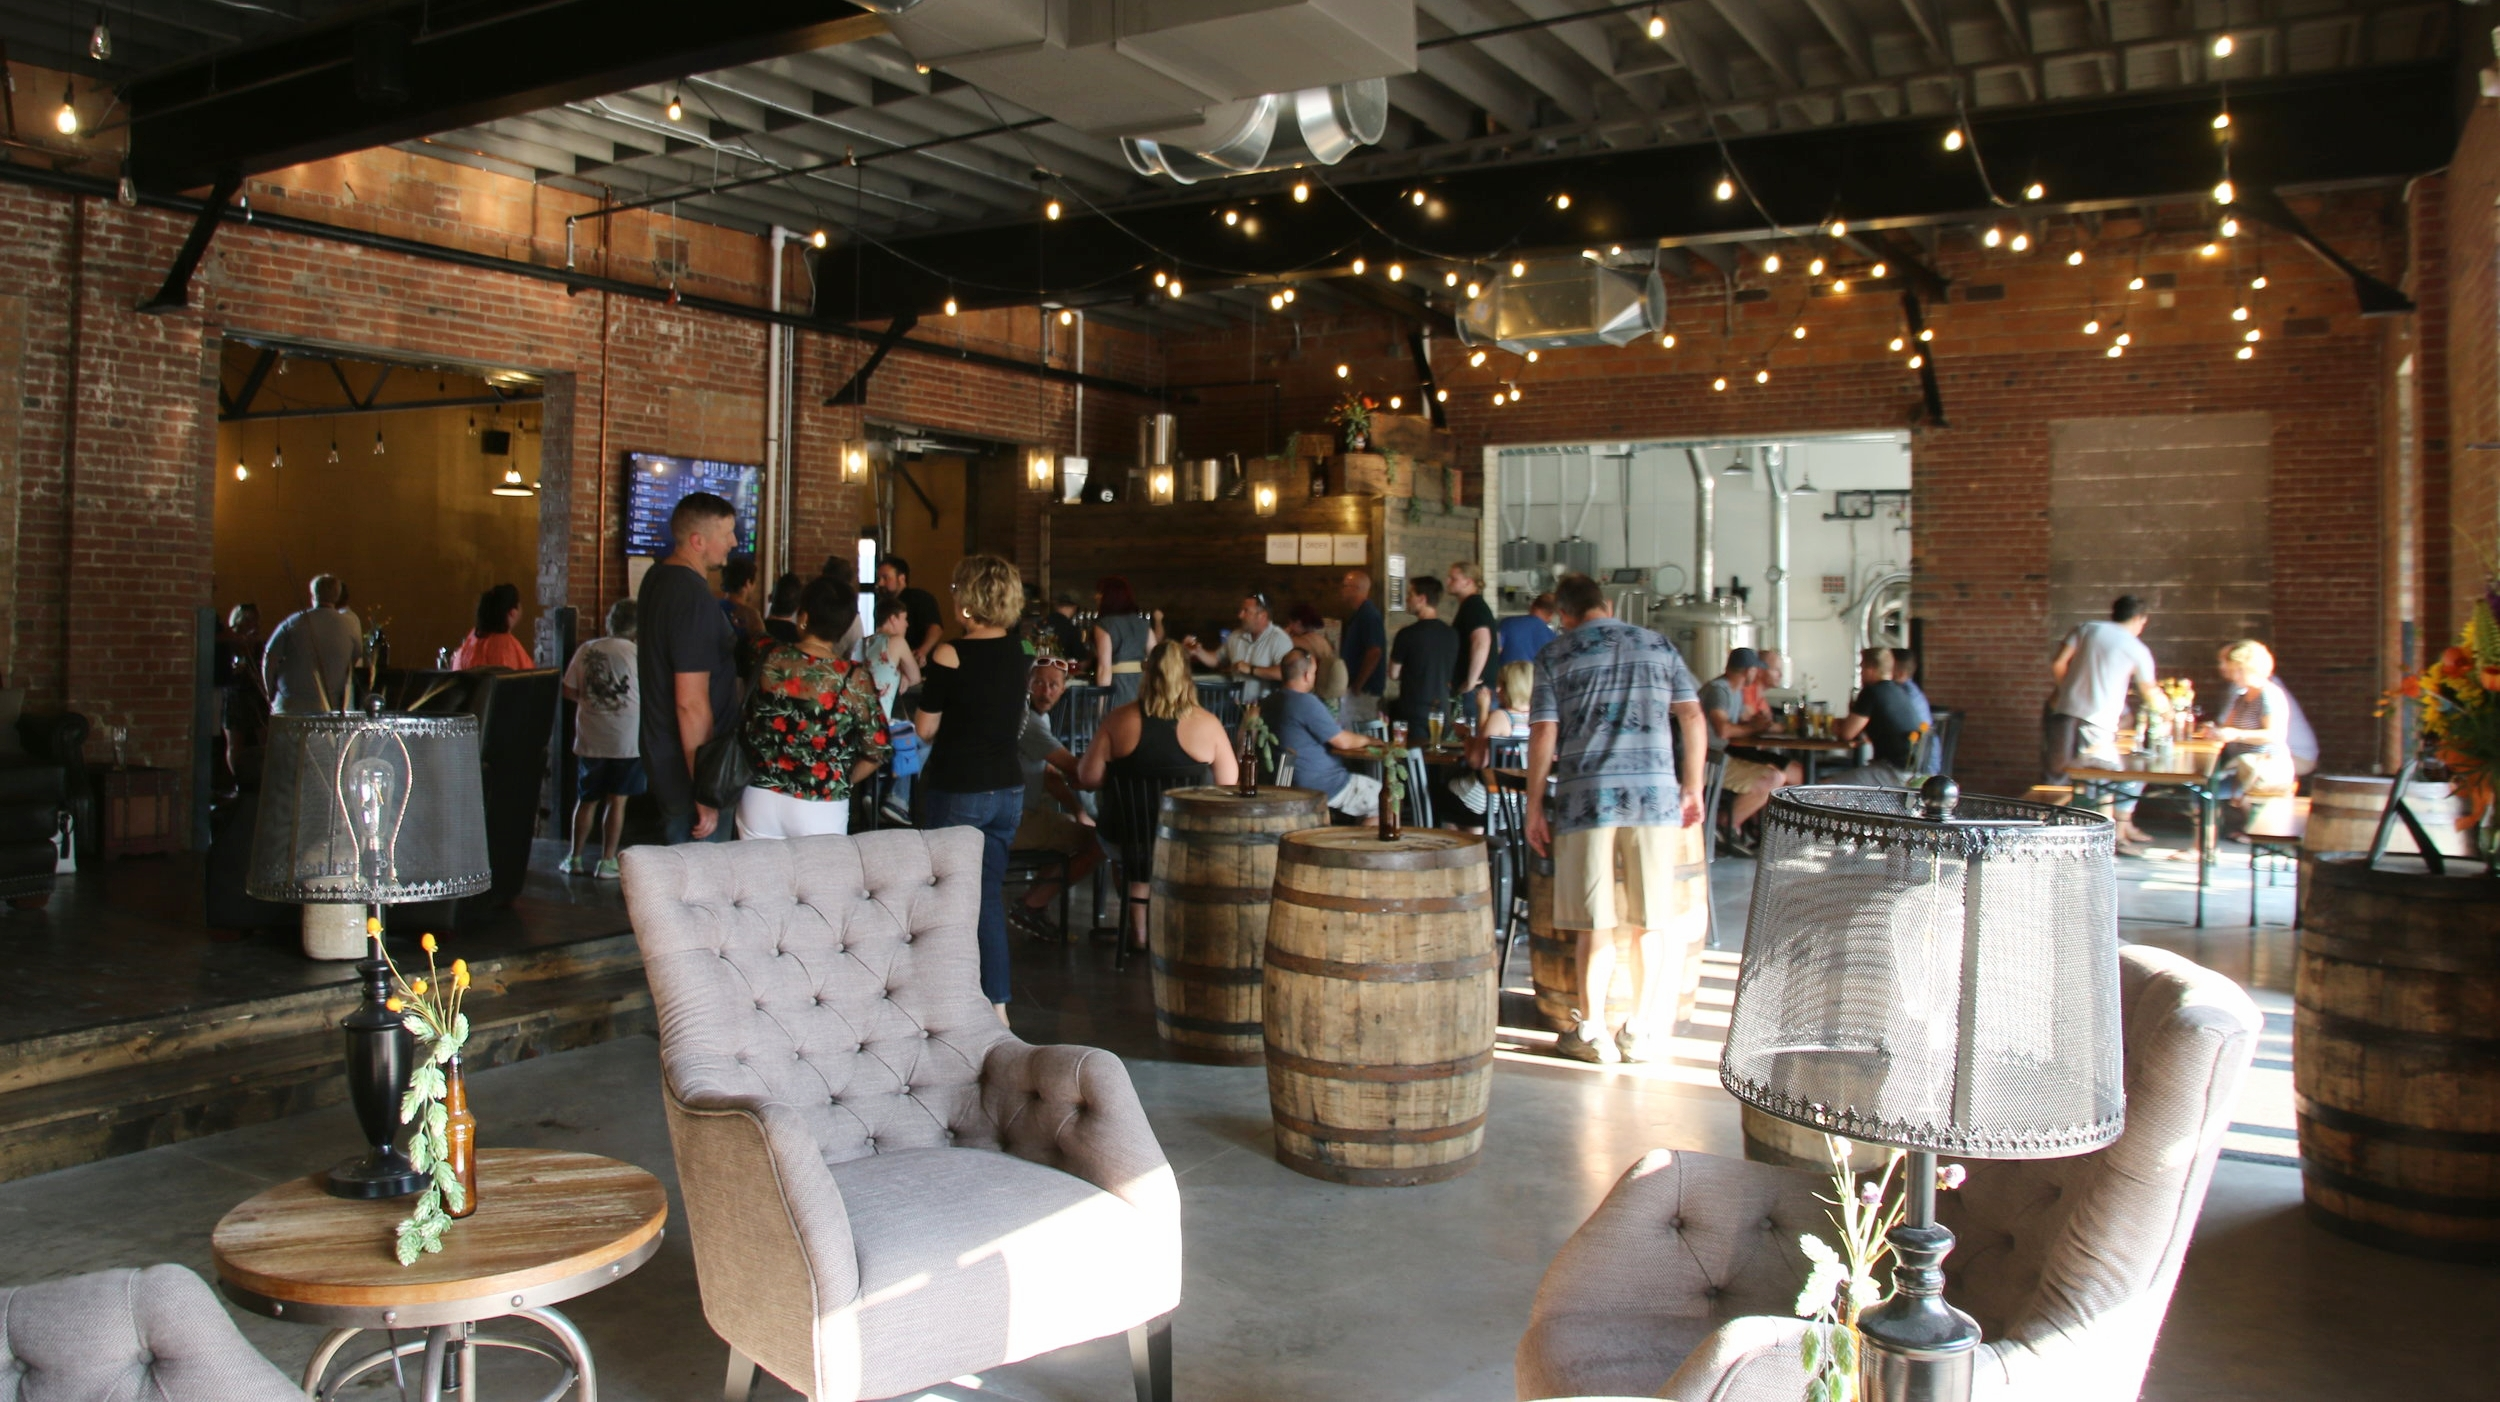 Remedy Brewing Company inside view (obviously)